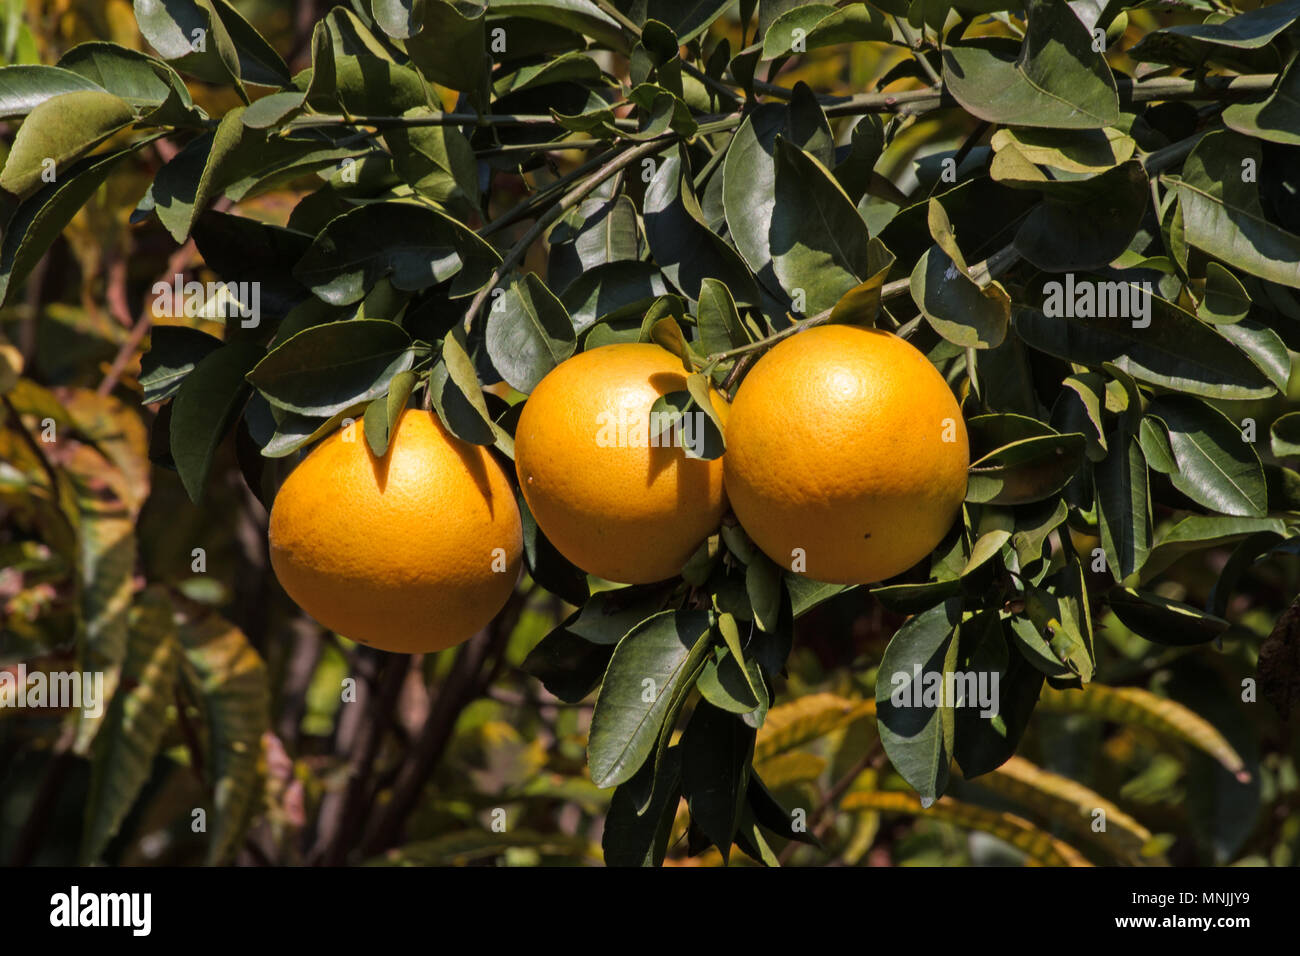 Grapefruit hanging on the tree - Stock Image